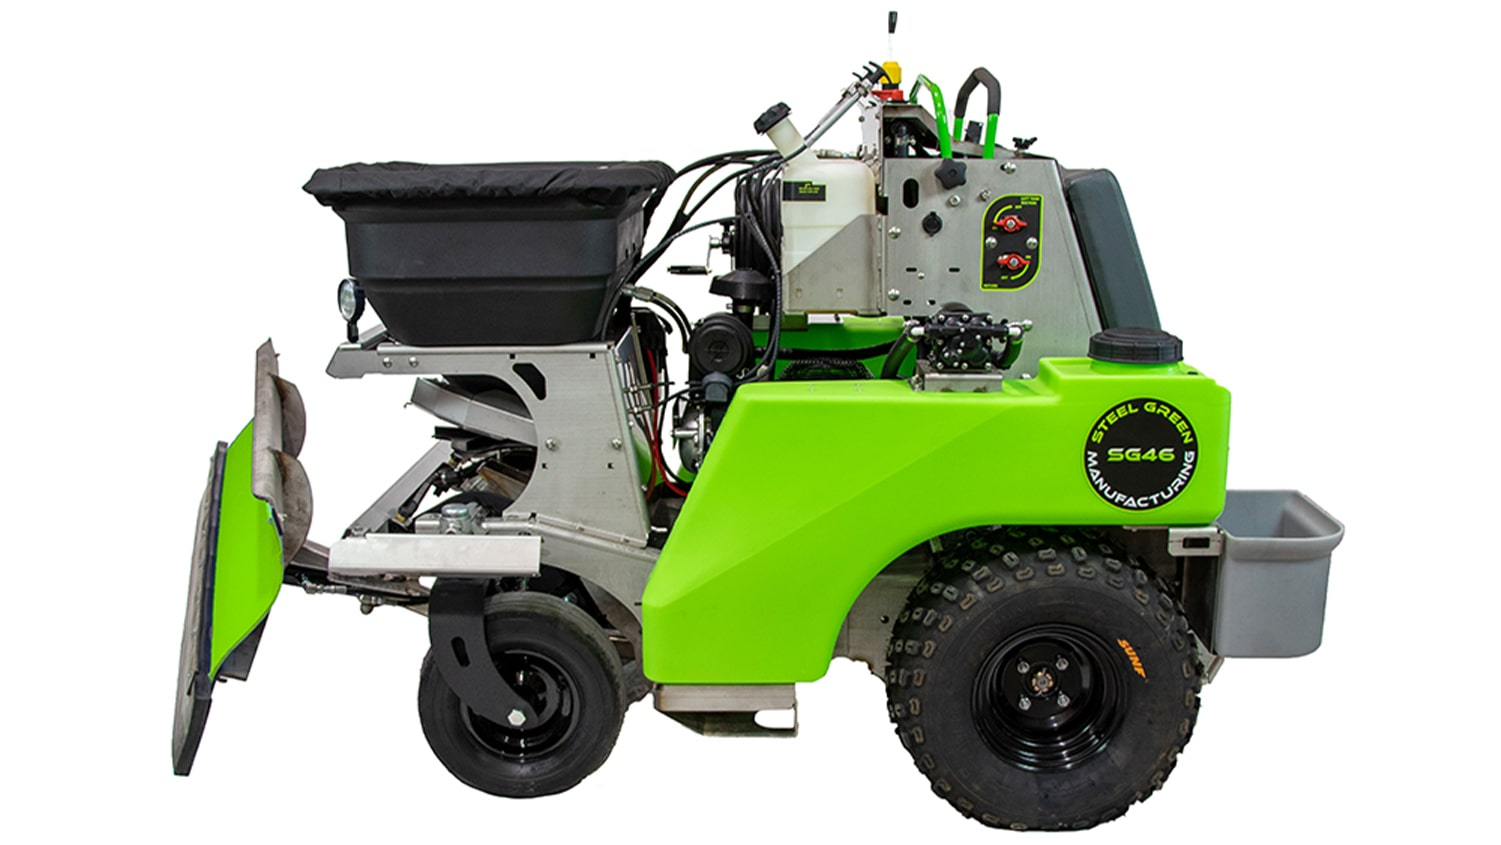 side view of steel green manufacturing spreader-sprayer with snowplow attachment